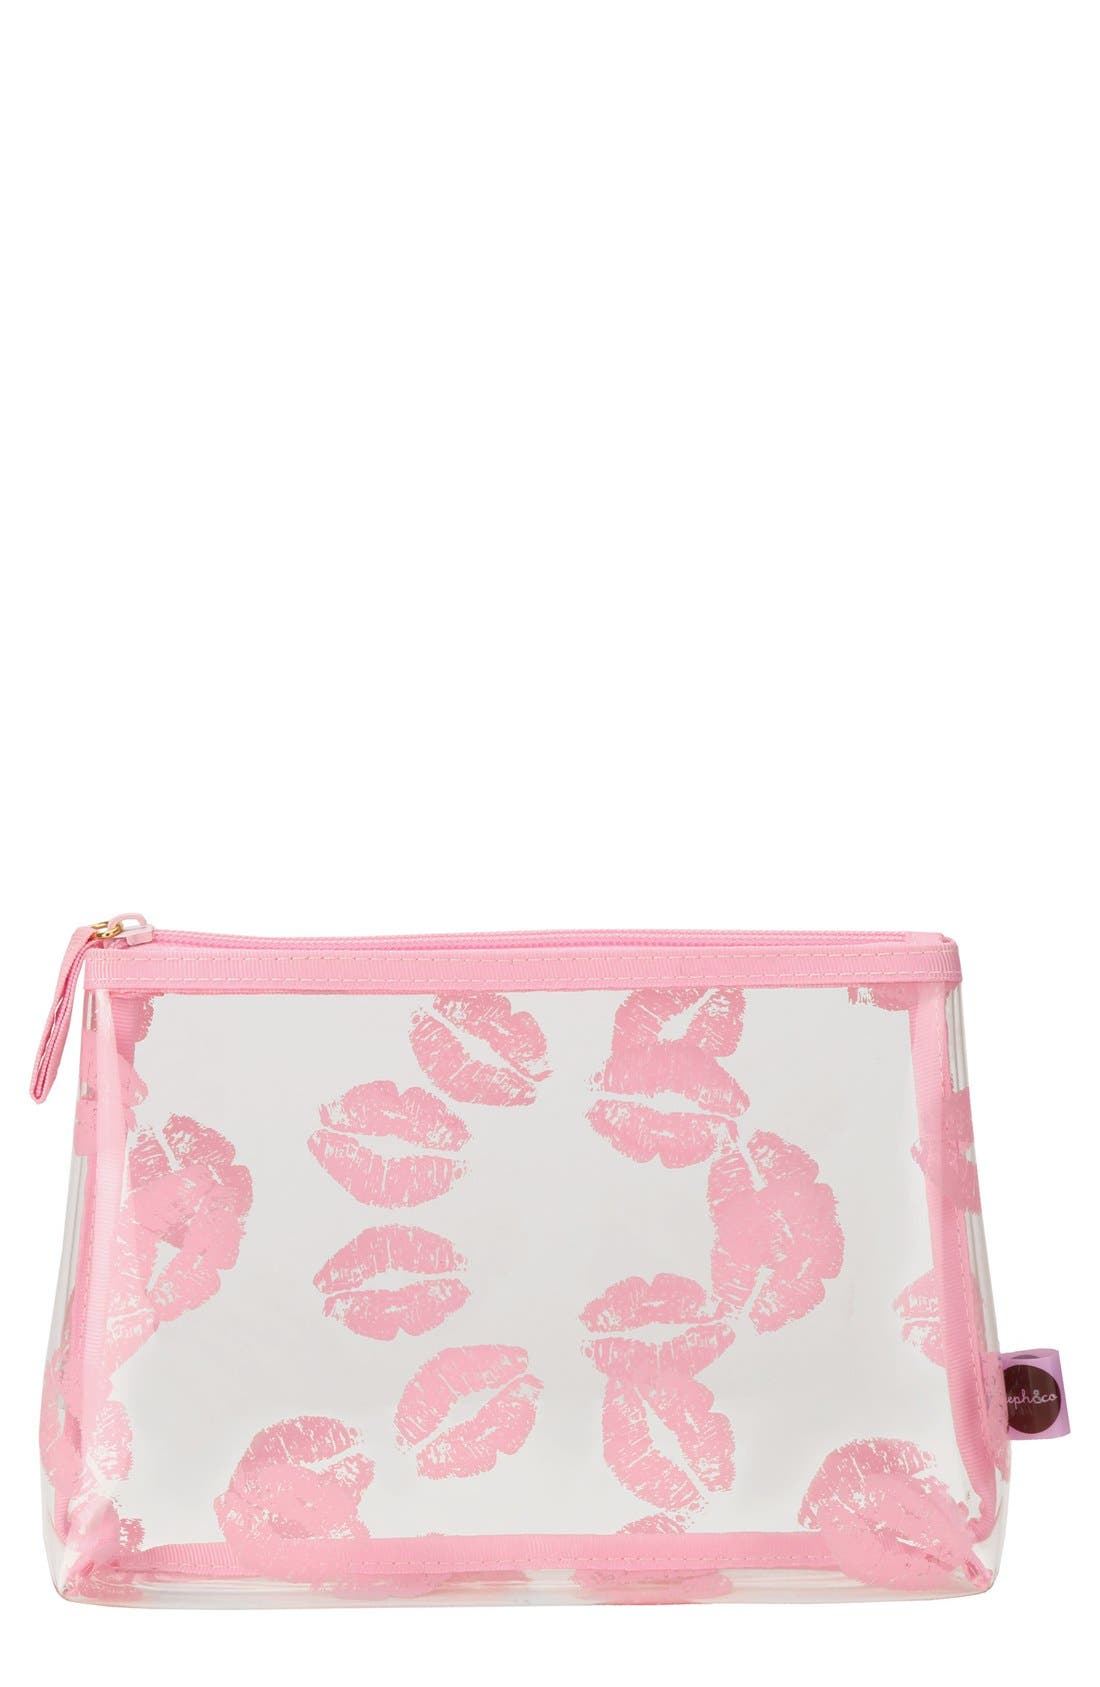 steph&co. Small Print Cosmetics Case (Limited Edition) (Nordstrom Exclusive)